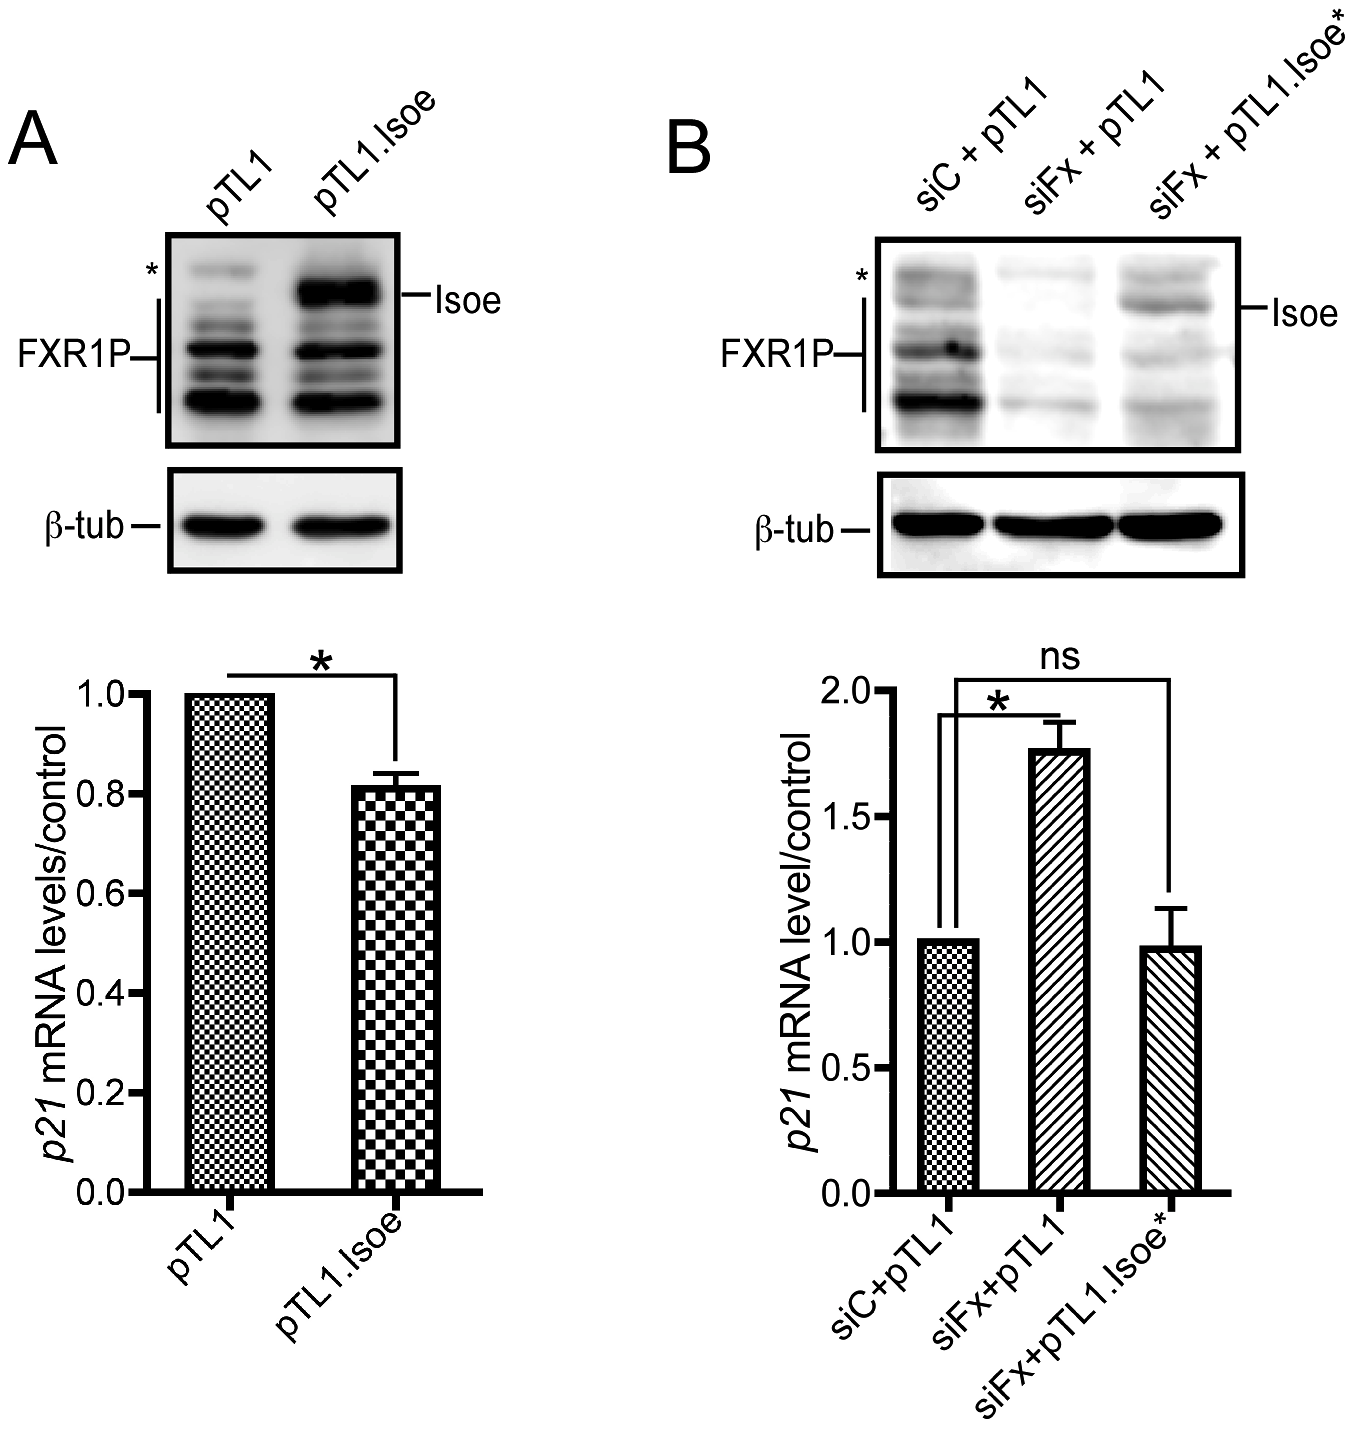 FXR1P overexpression in <i>Fxr1</i>-depleted C2C12 cells restores <i>p21</i> mRNA levels to normal.